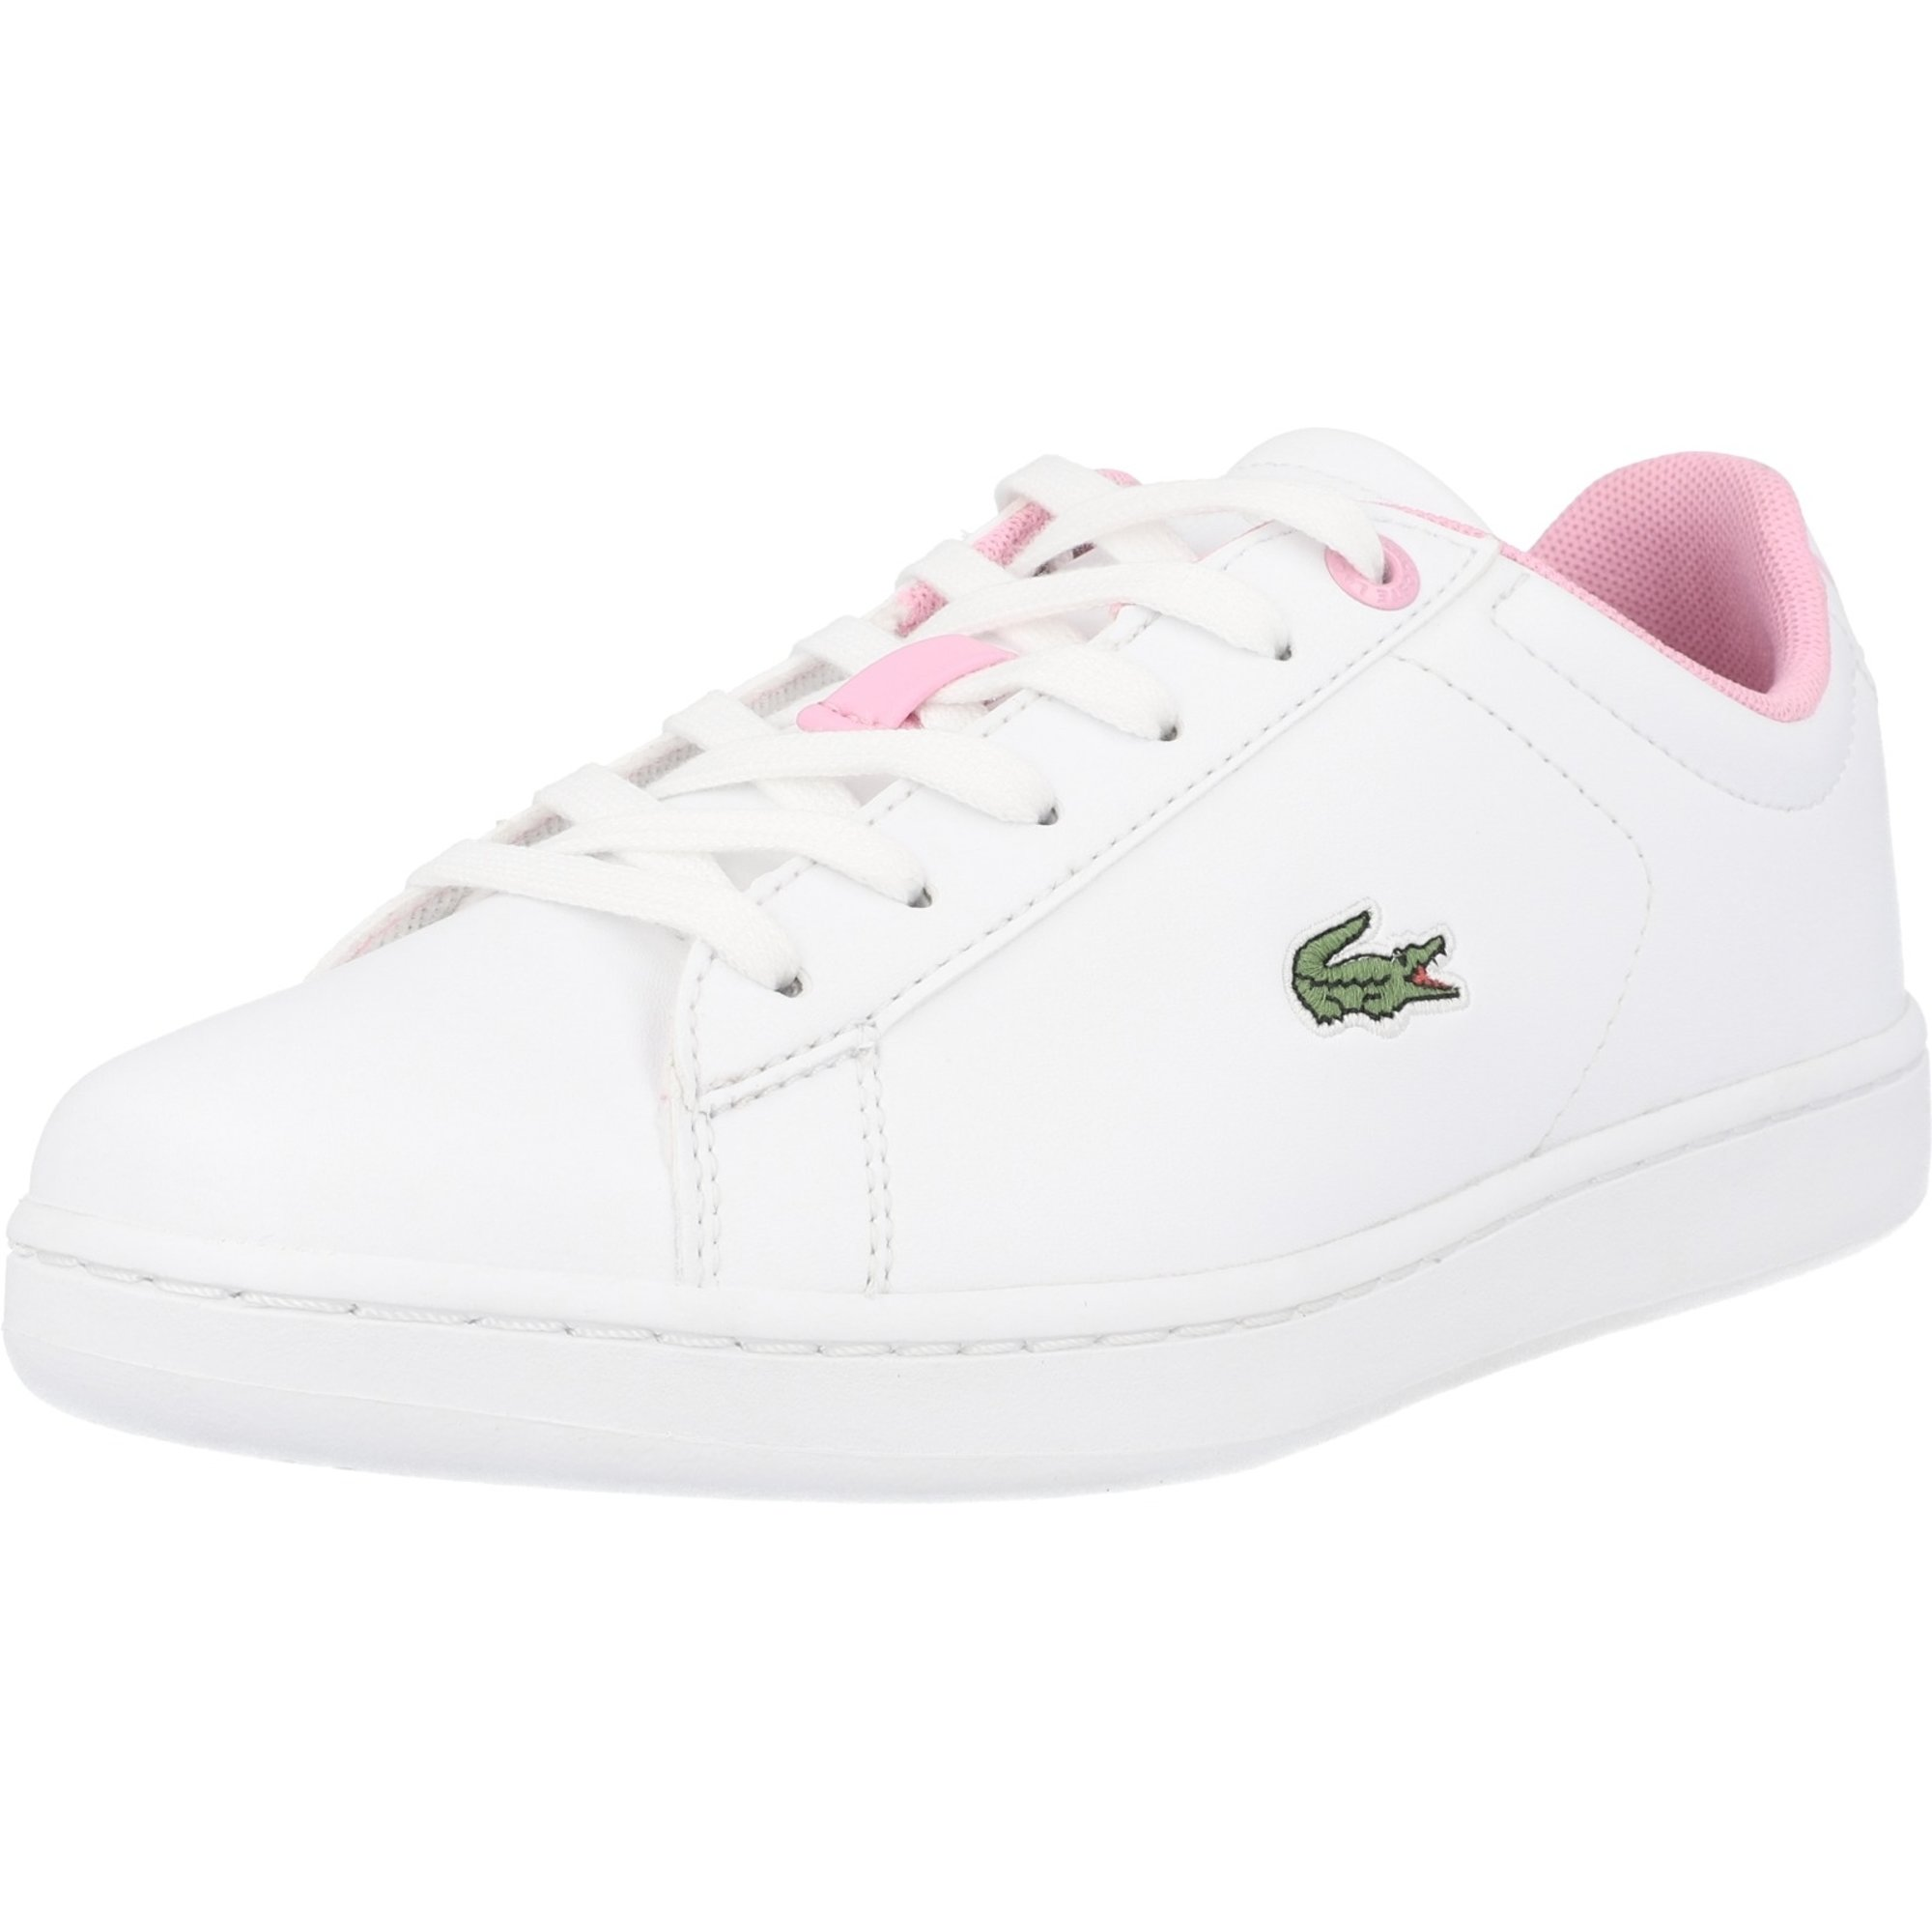 Lacoste Carnaby Evo 0120 2 White/Light Pink Synthetic